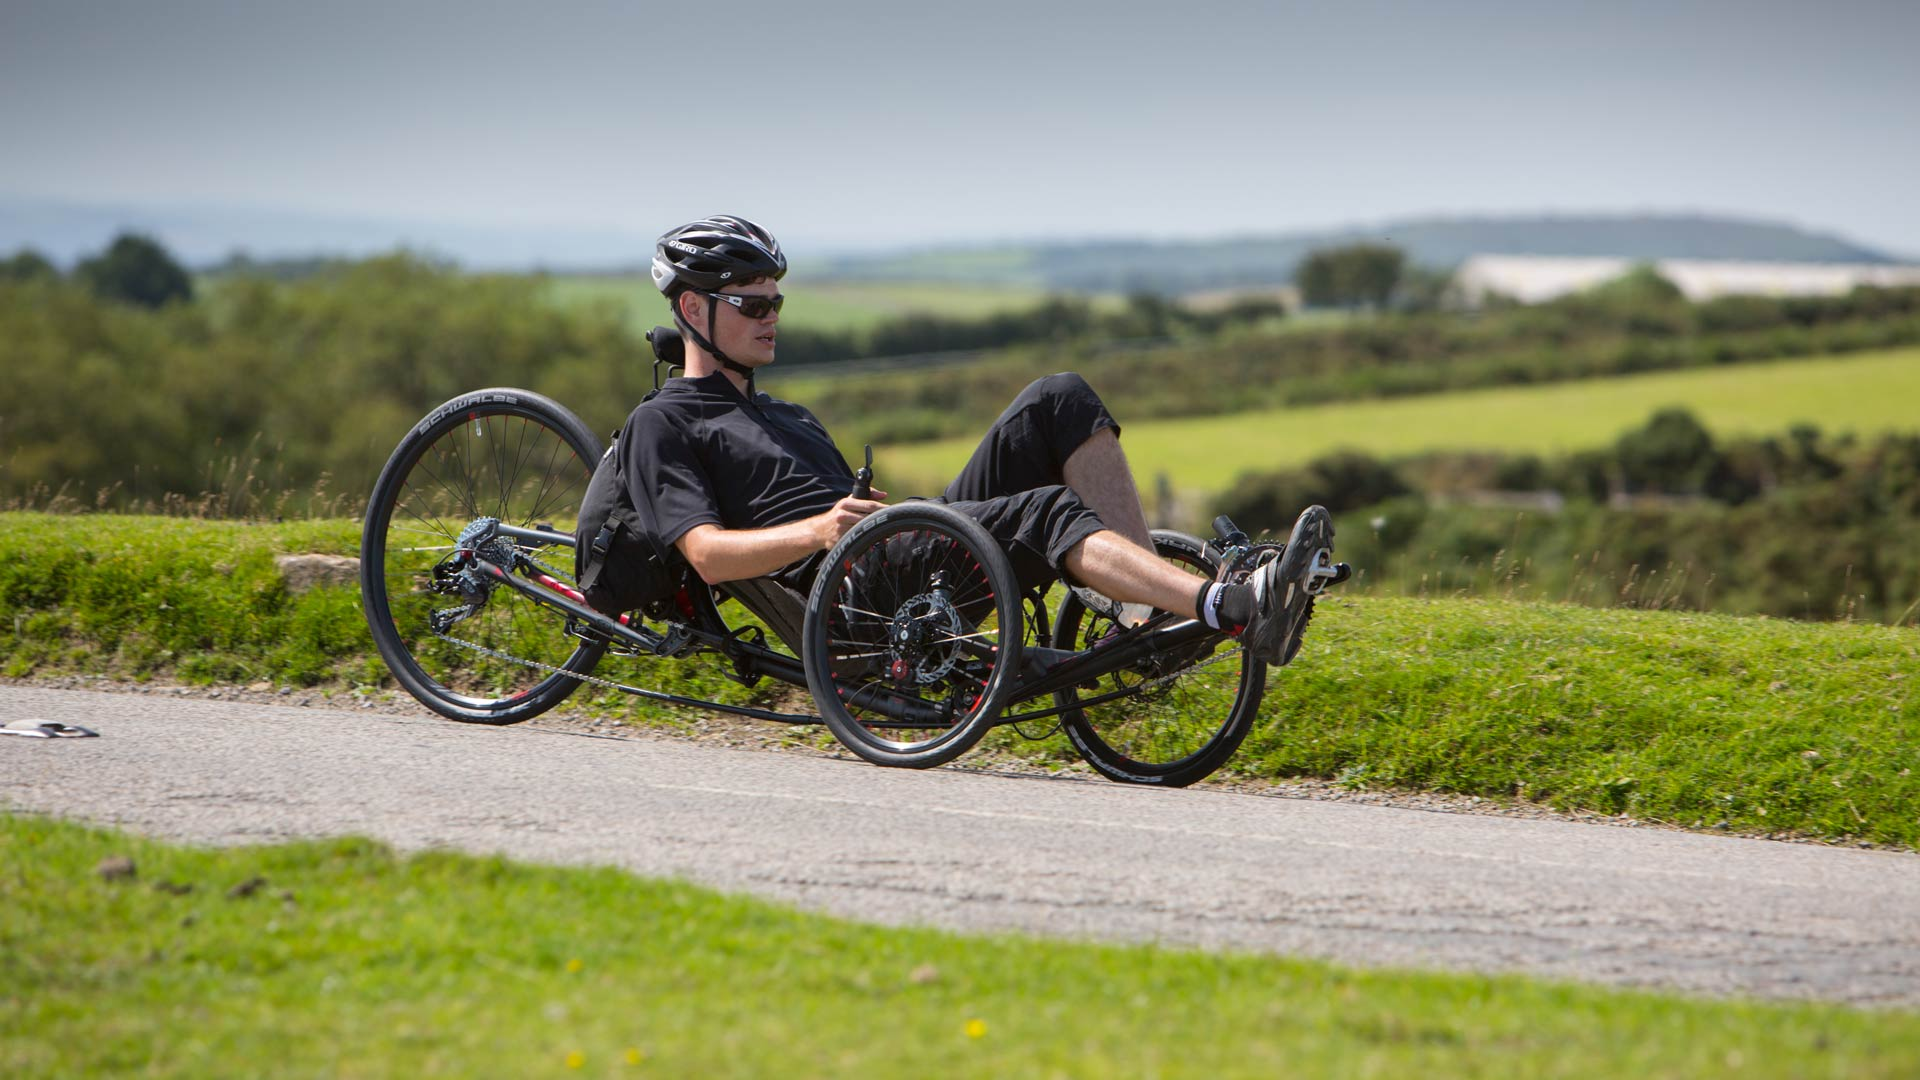 Ice Recumbent Trikes Bikes Electric Assist Laid Back Cycles